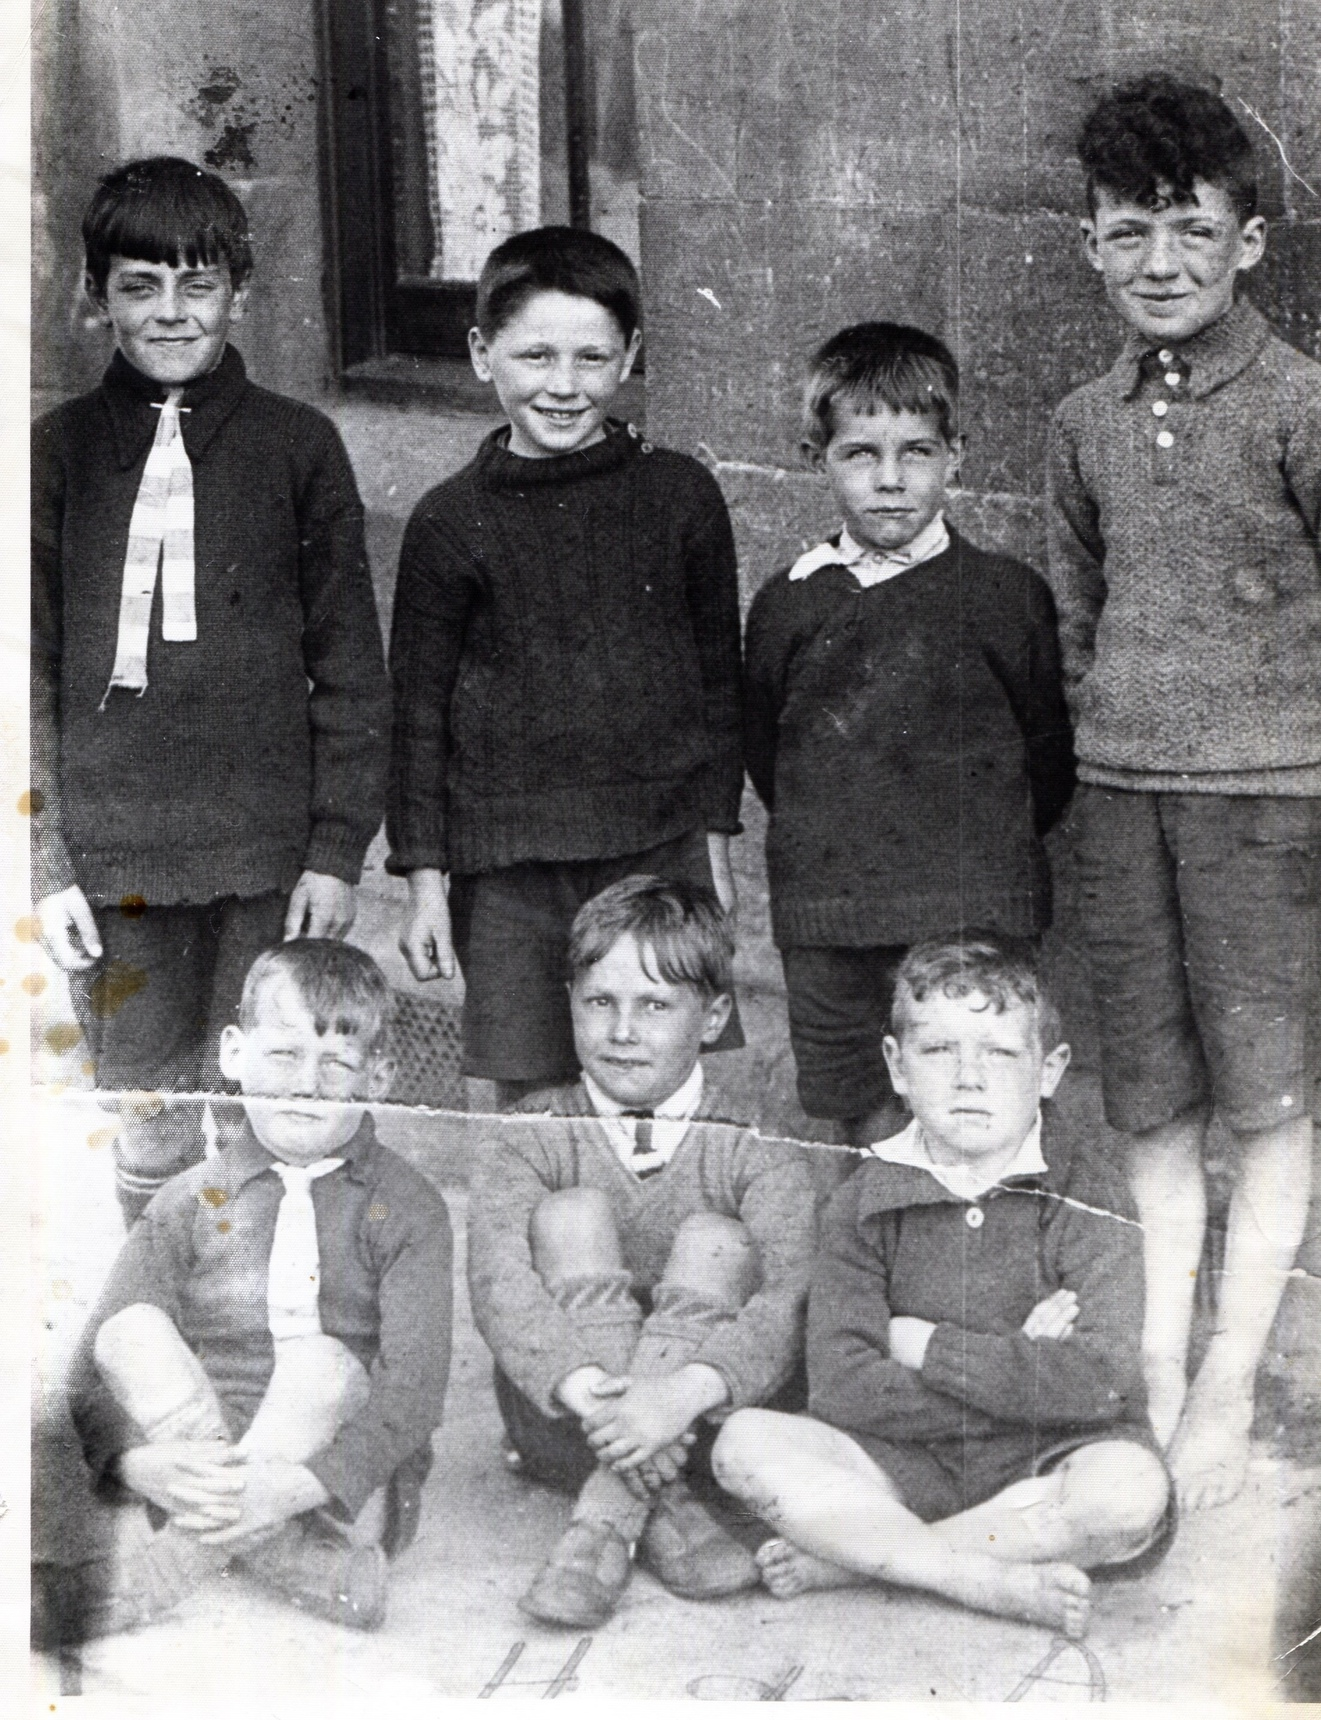 Group of pals outside the Hole in the Wall pub, New Street, Fisherrow, Musselburgh